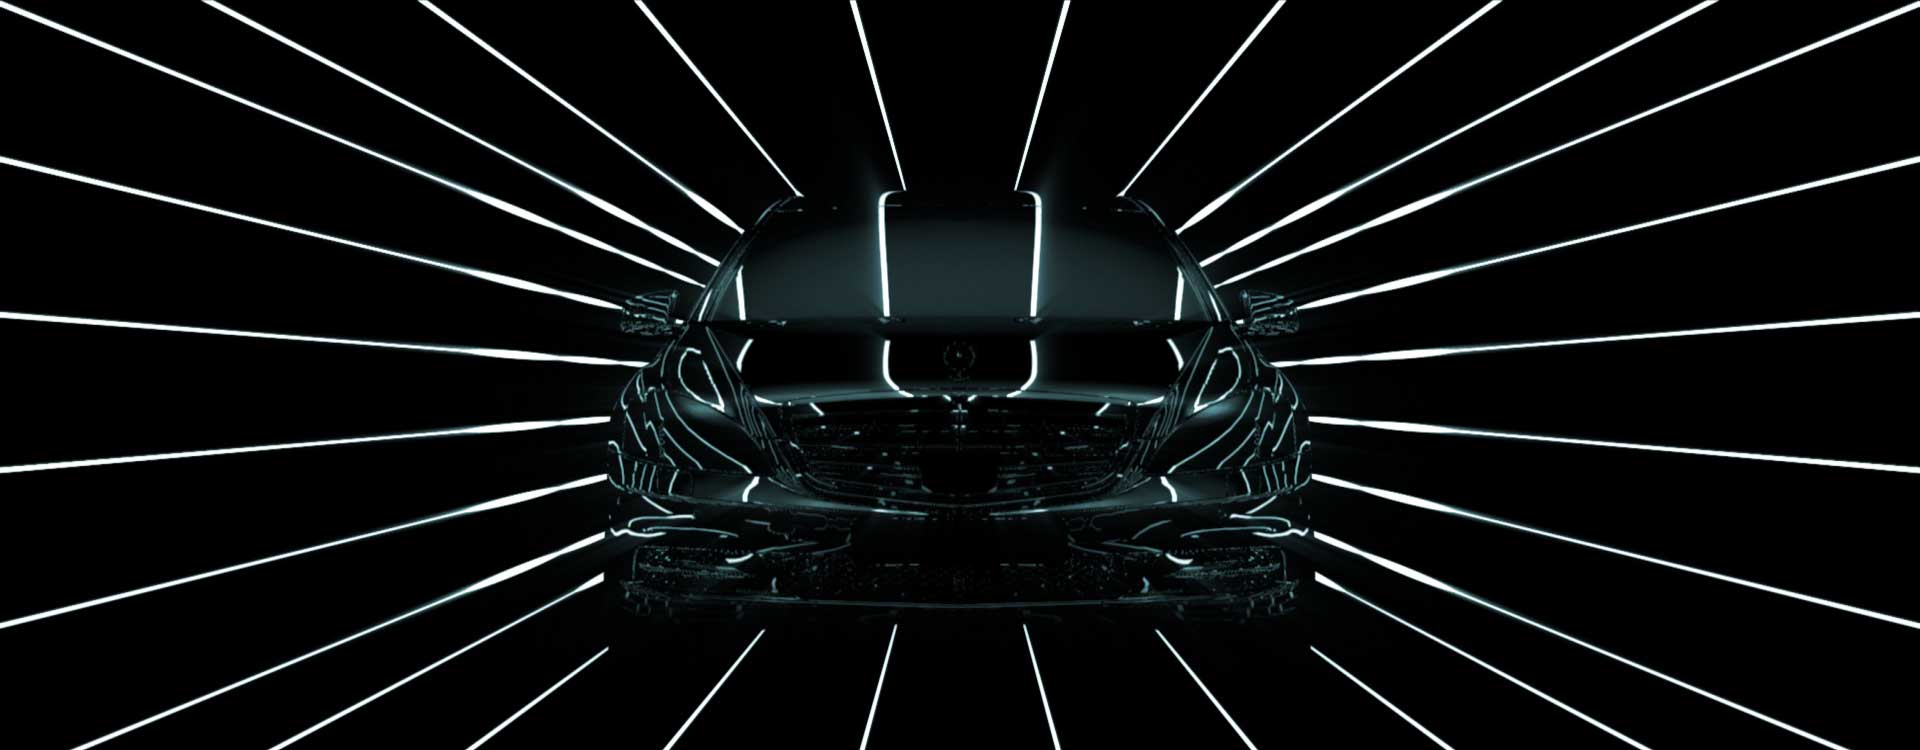 Car frontview. Still from Mercedes-Benz Commercial.